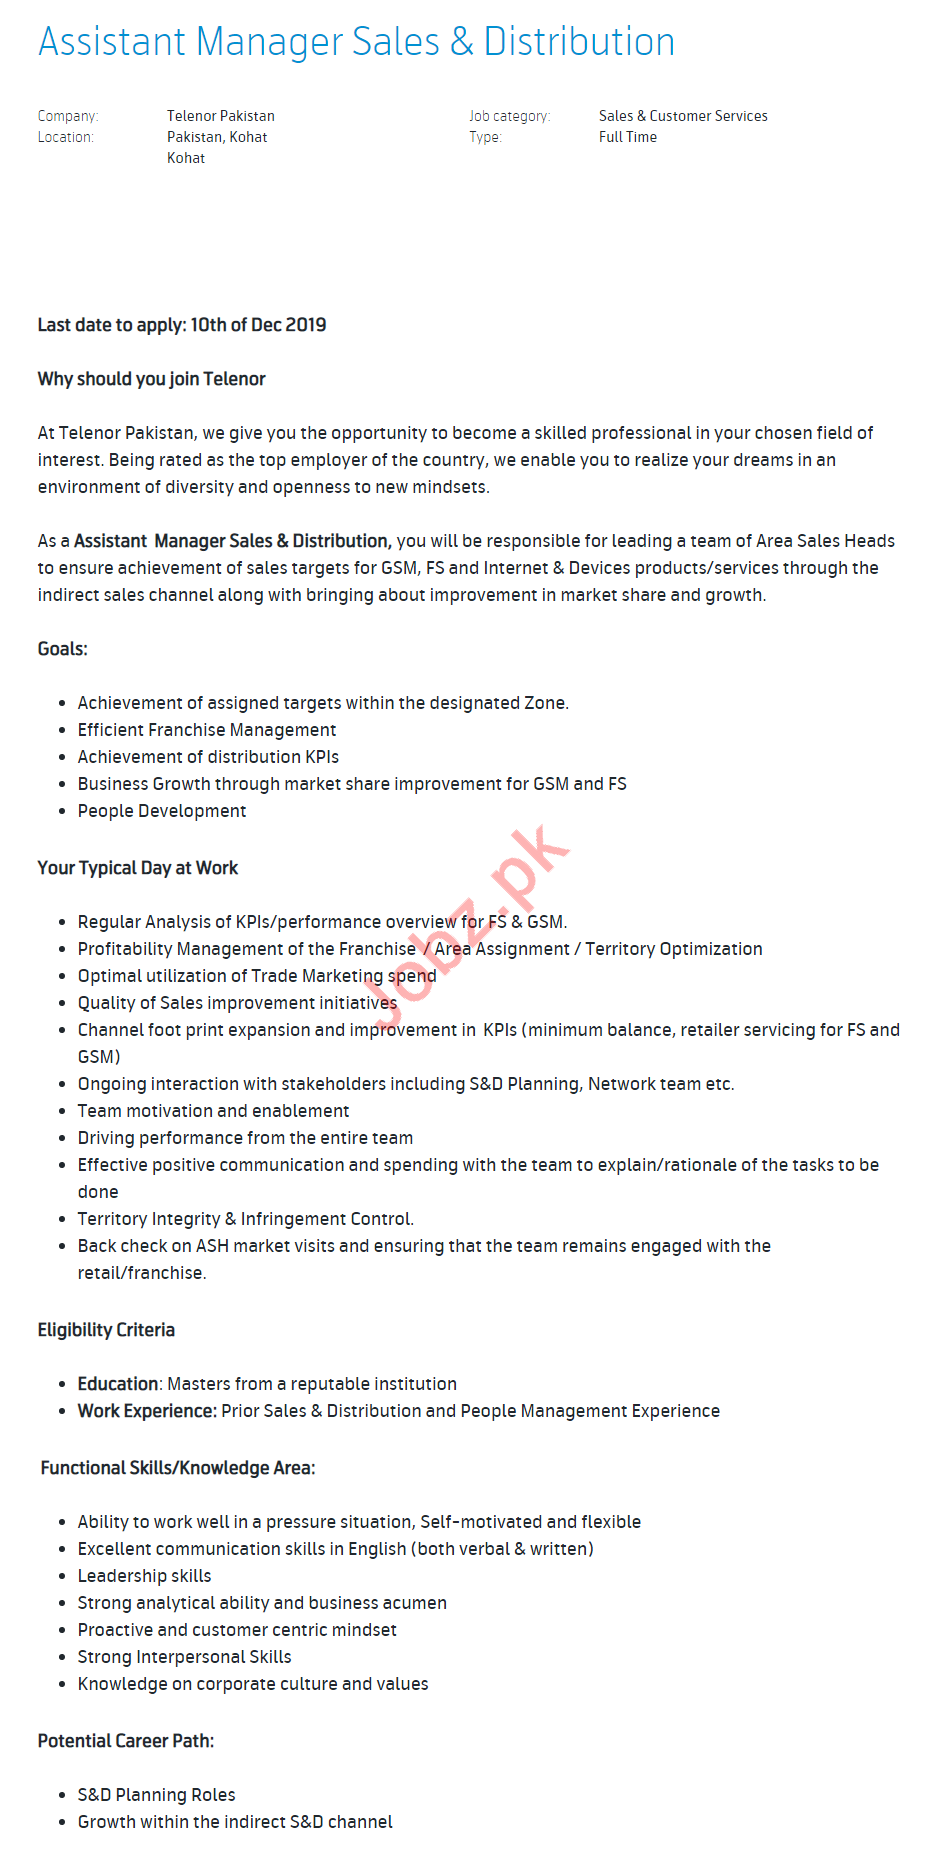 Assistant Manager Sales & Distribution Jobs in Telenor